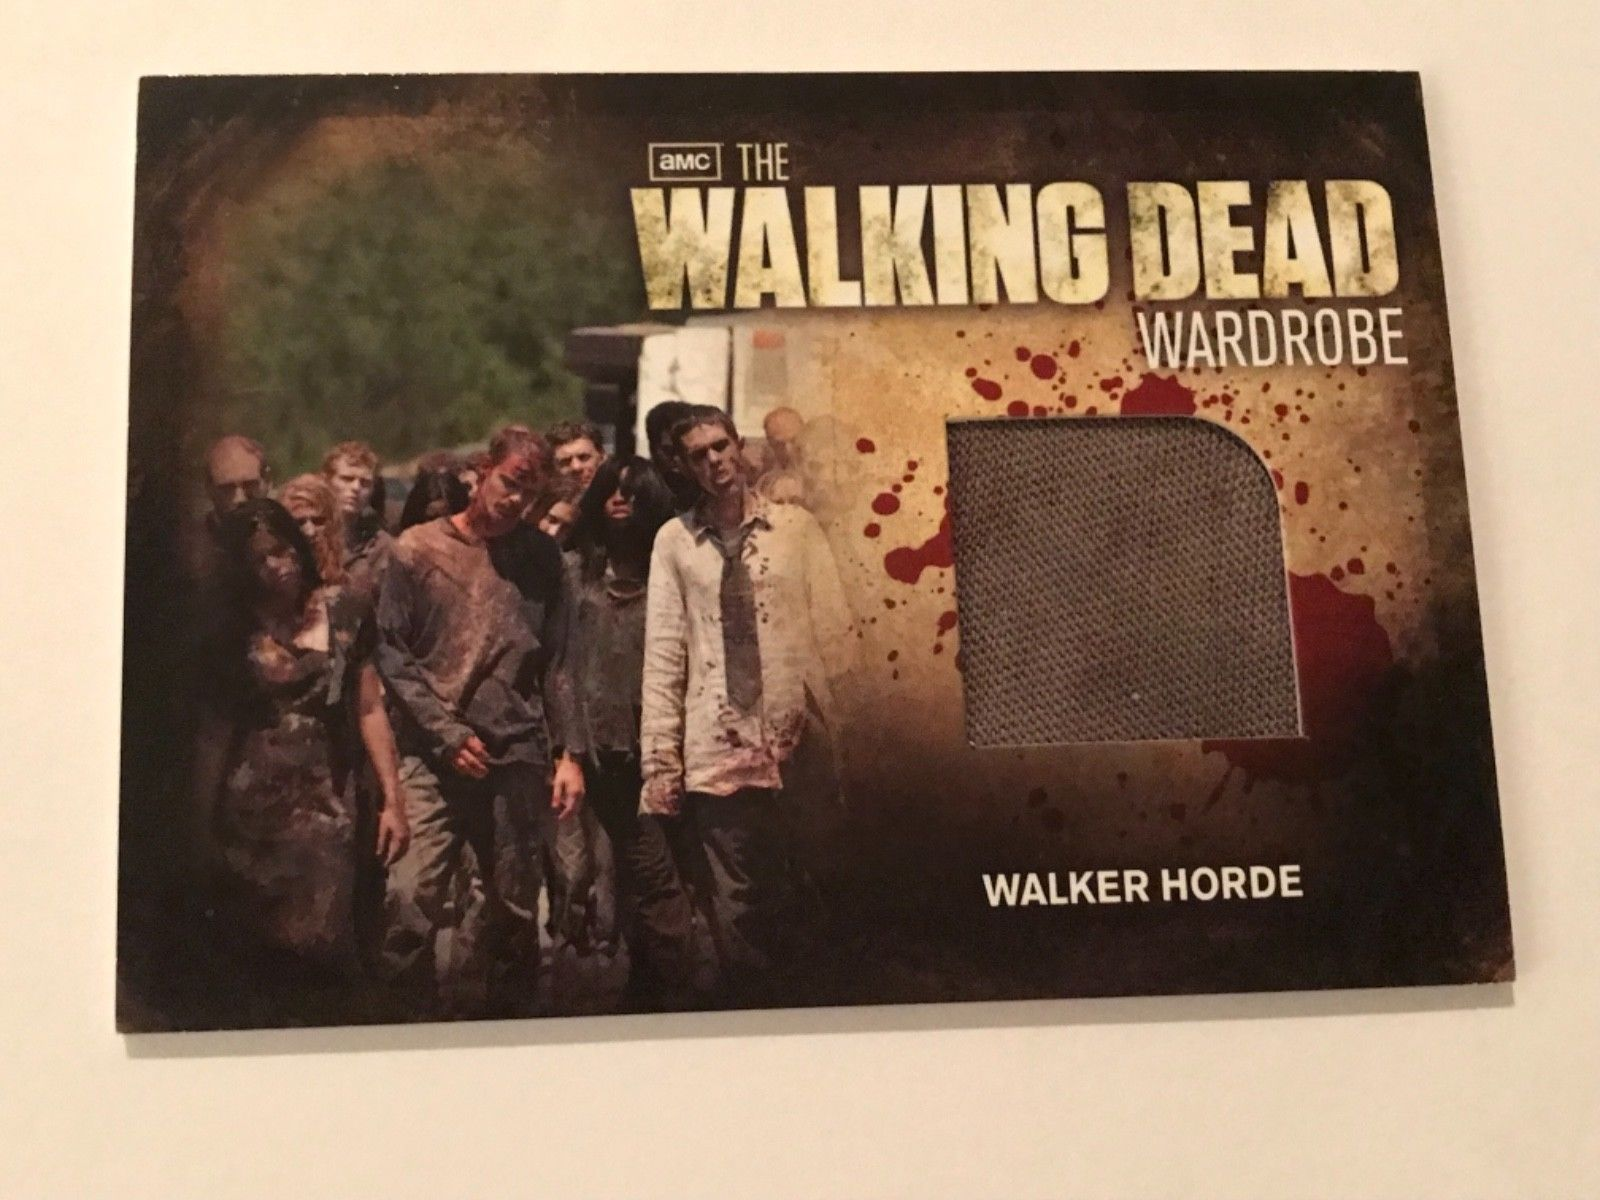 Primary image for Cryptozoic Walking Dead Season 2 Wardrobe Walker Horde M32